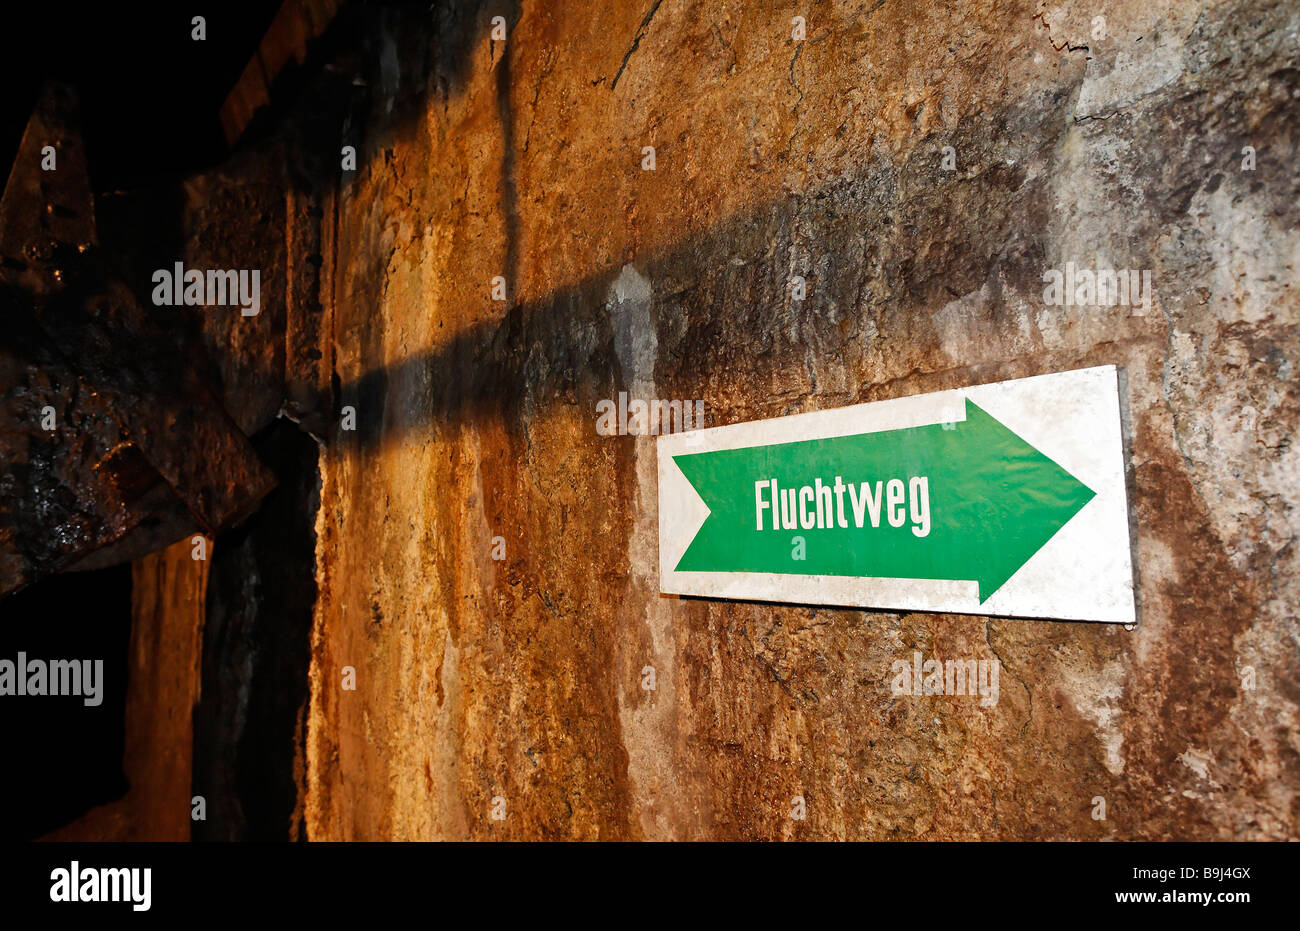 Emergency exit sign in a mining tunnel, Schaubergwerk Buechenberg mine, Elbingerode, Harz, Saxony-Anhalt, Germany, - Stock Image